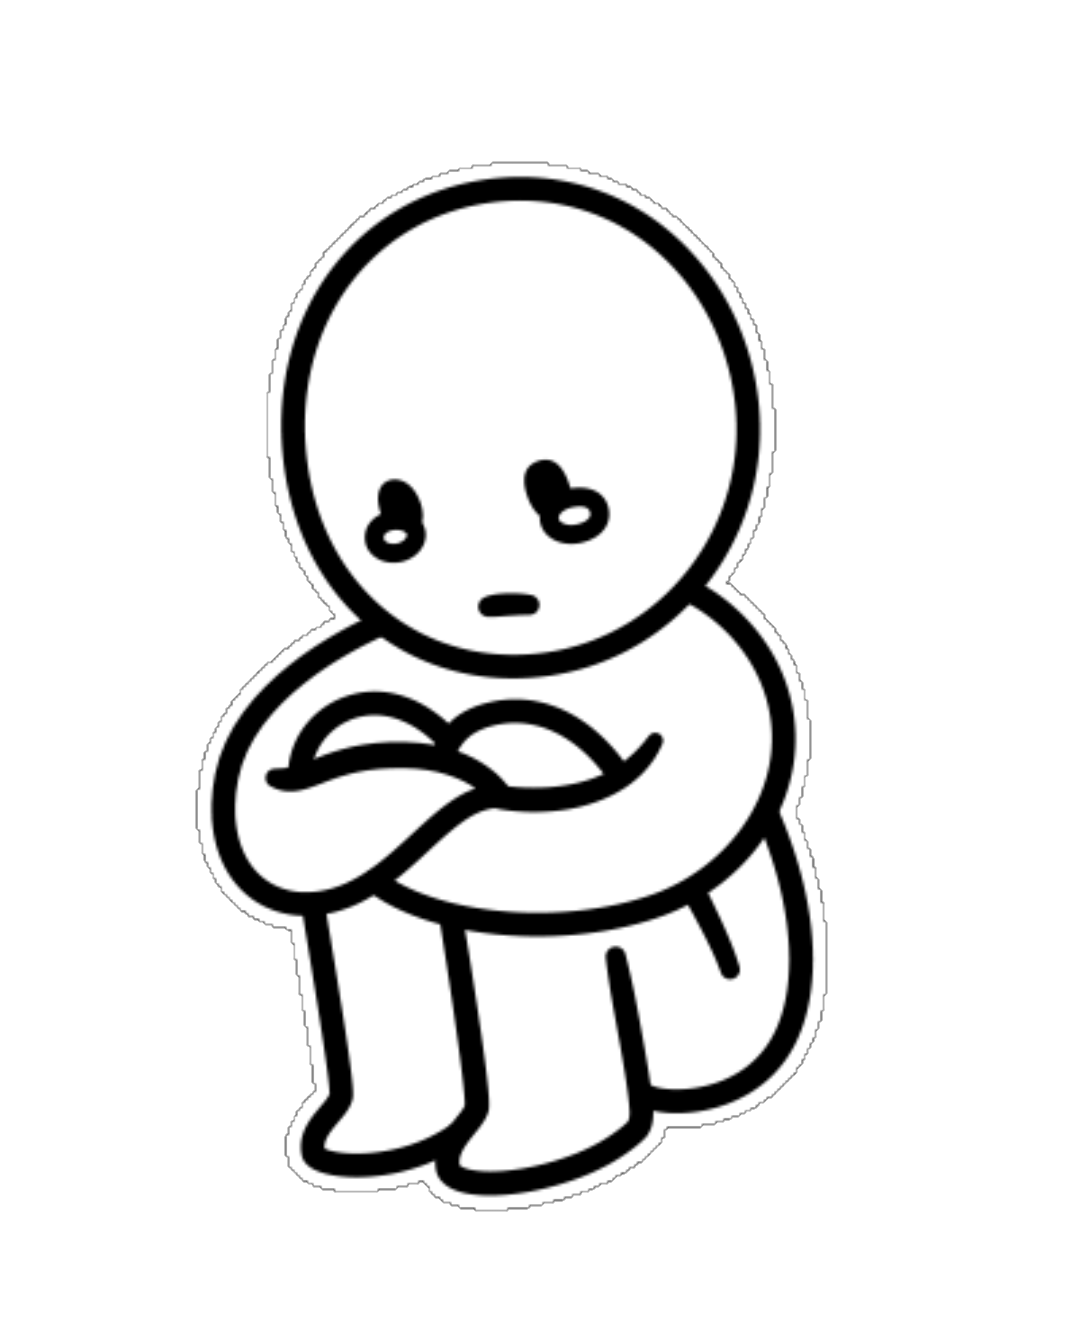 Collection of Sad clipart | Free download best Sad clipart ...